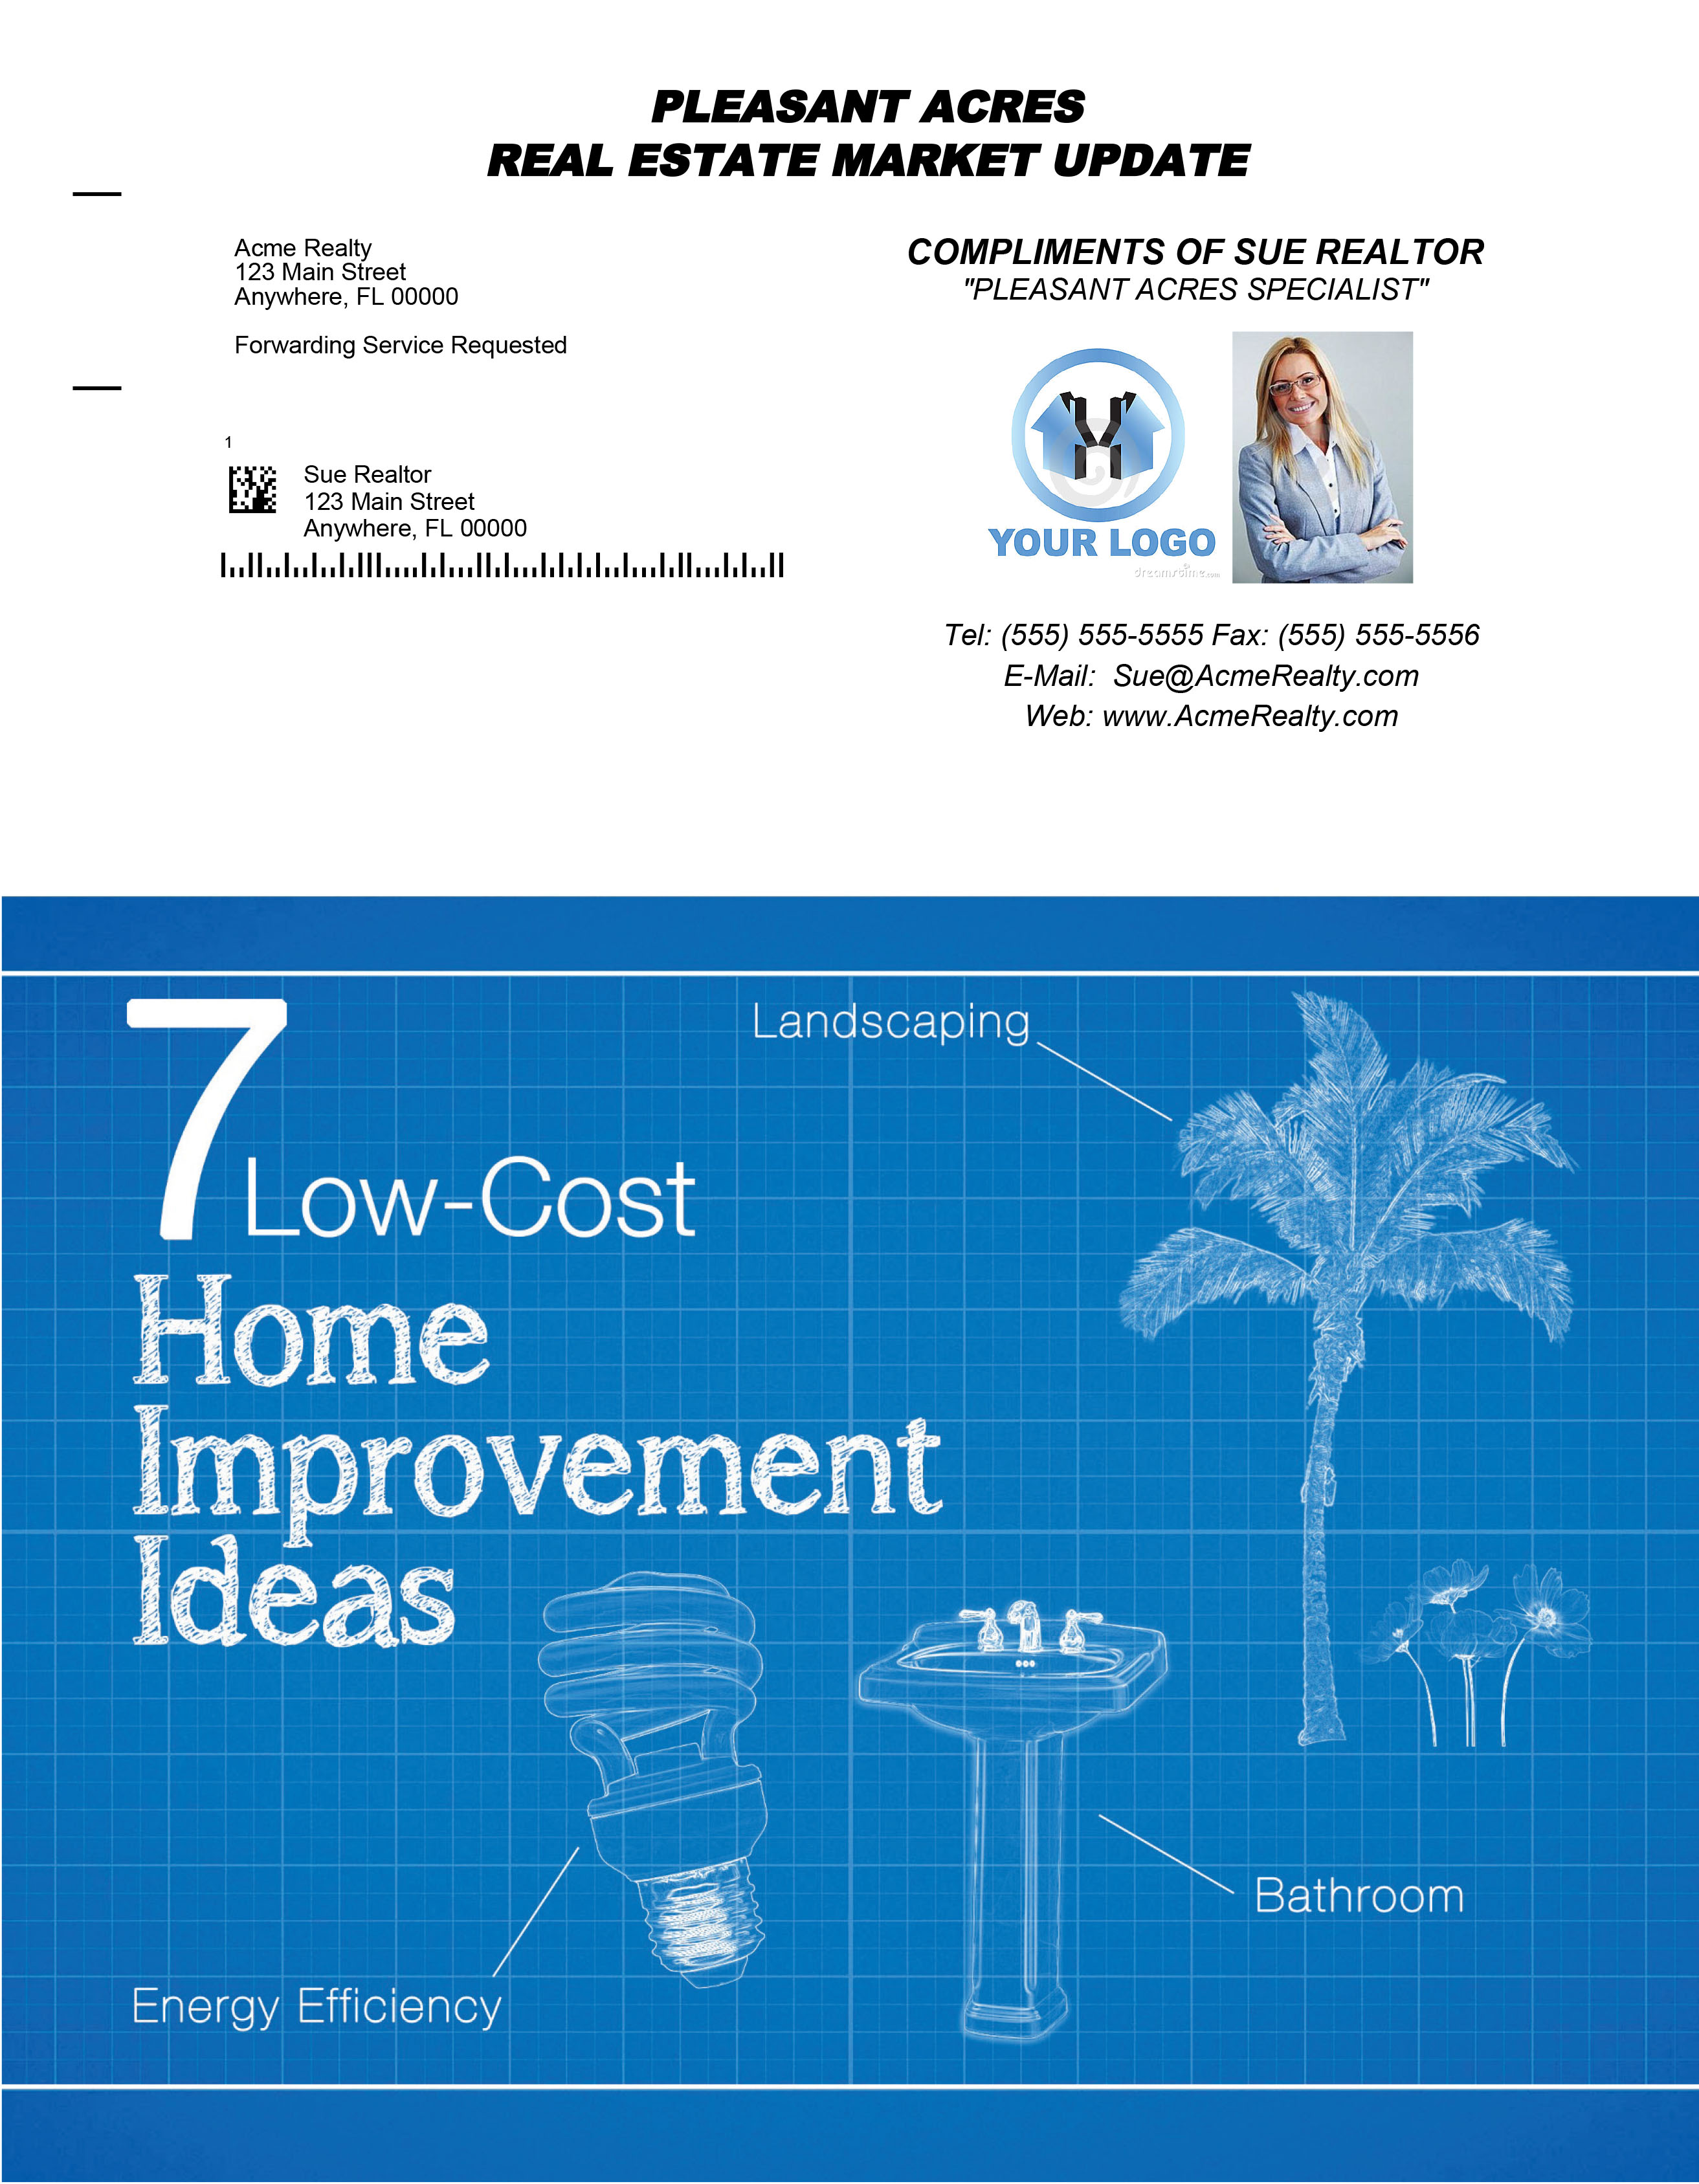 7 Low-Cost Home Improvements